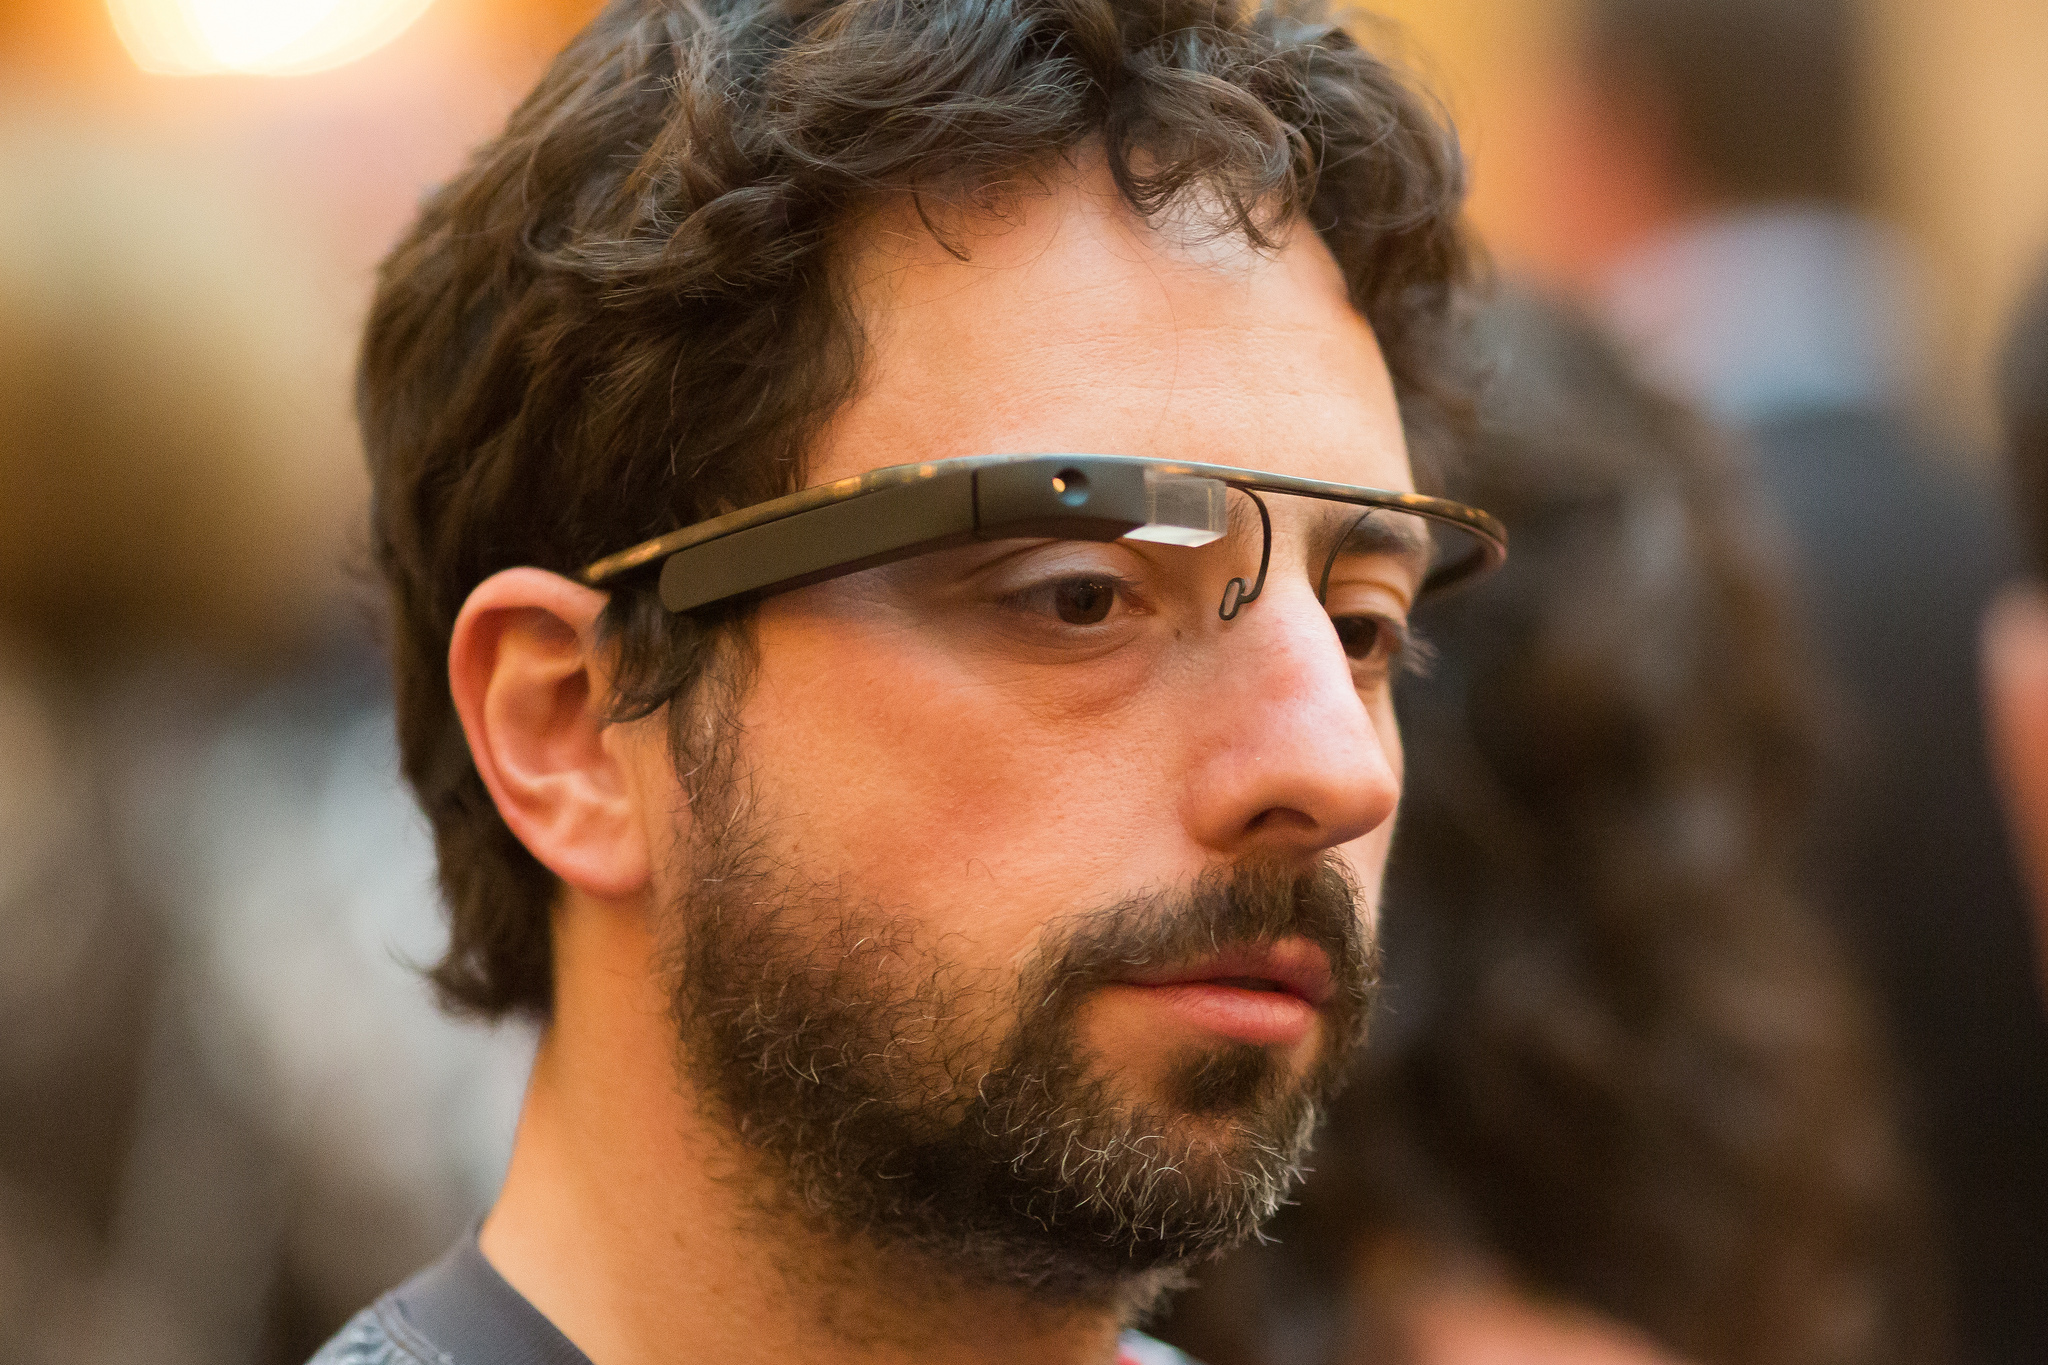 Google cofounder Sergey Brin sports his ever present Google Glass.